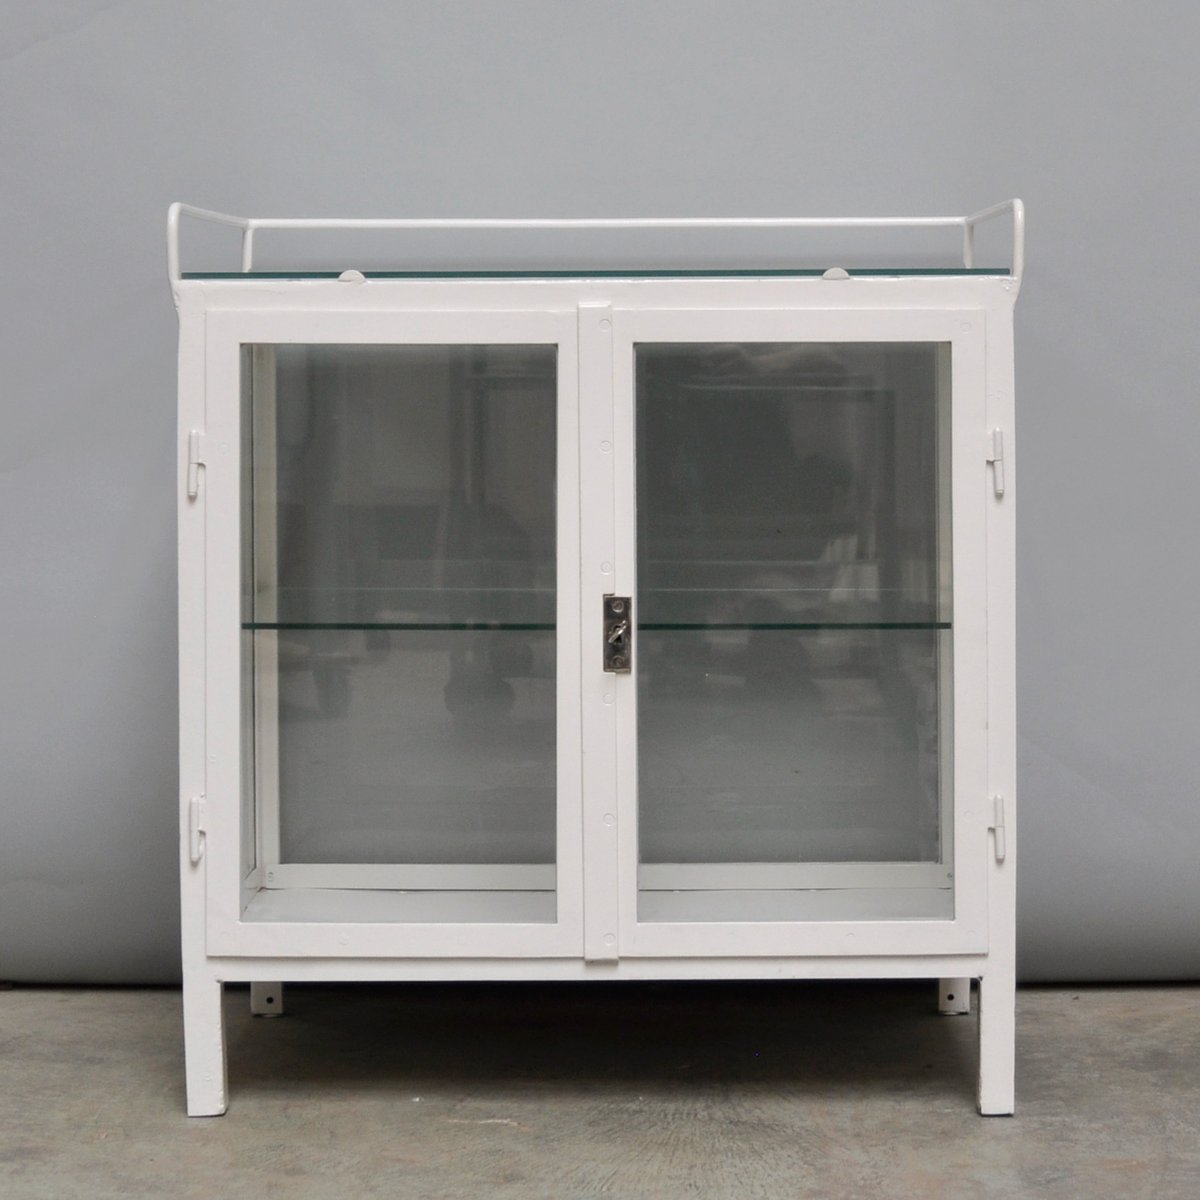 Vintage Hungarian White Medicine Cabinet, 1940s for sale at Pamono